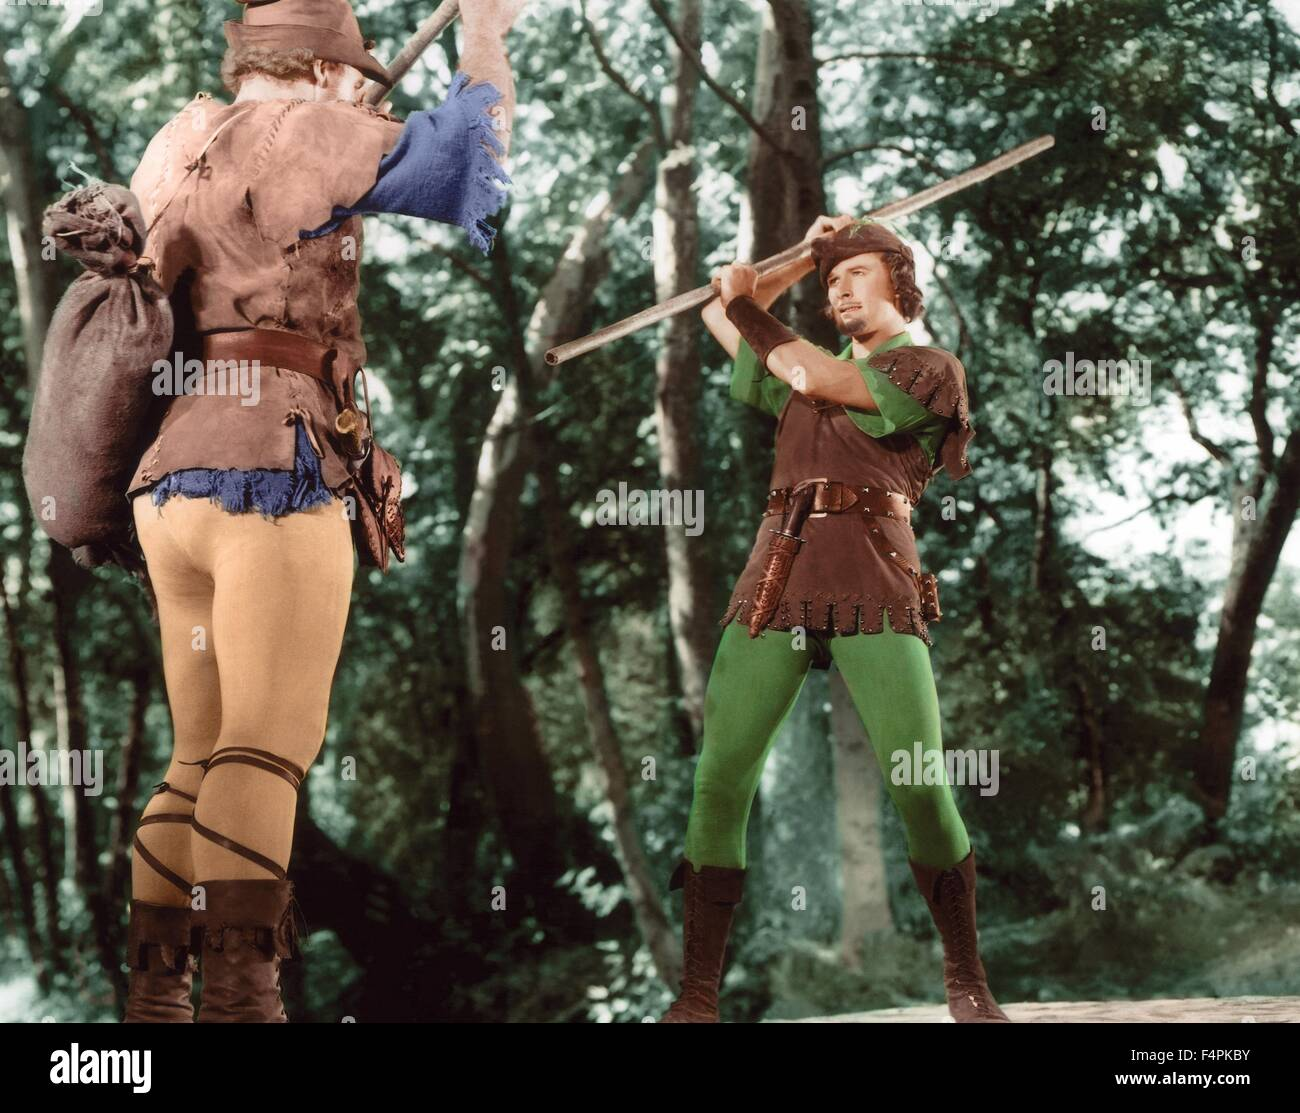 Errol Flynn / Le avventure di Robin Hood / 1938 diretto da Michael Curtiz e William Keighley [Warner Bros Foto] Immagini Stock